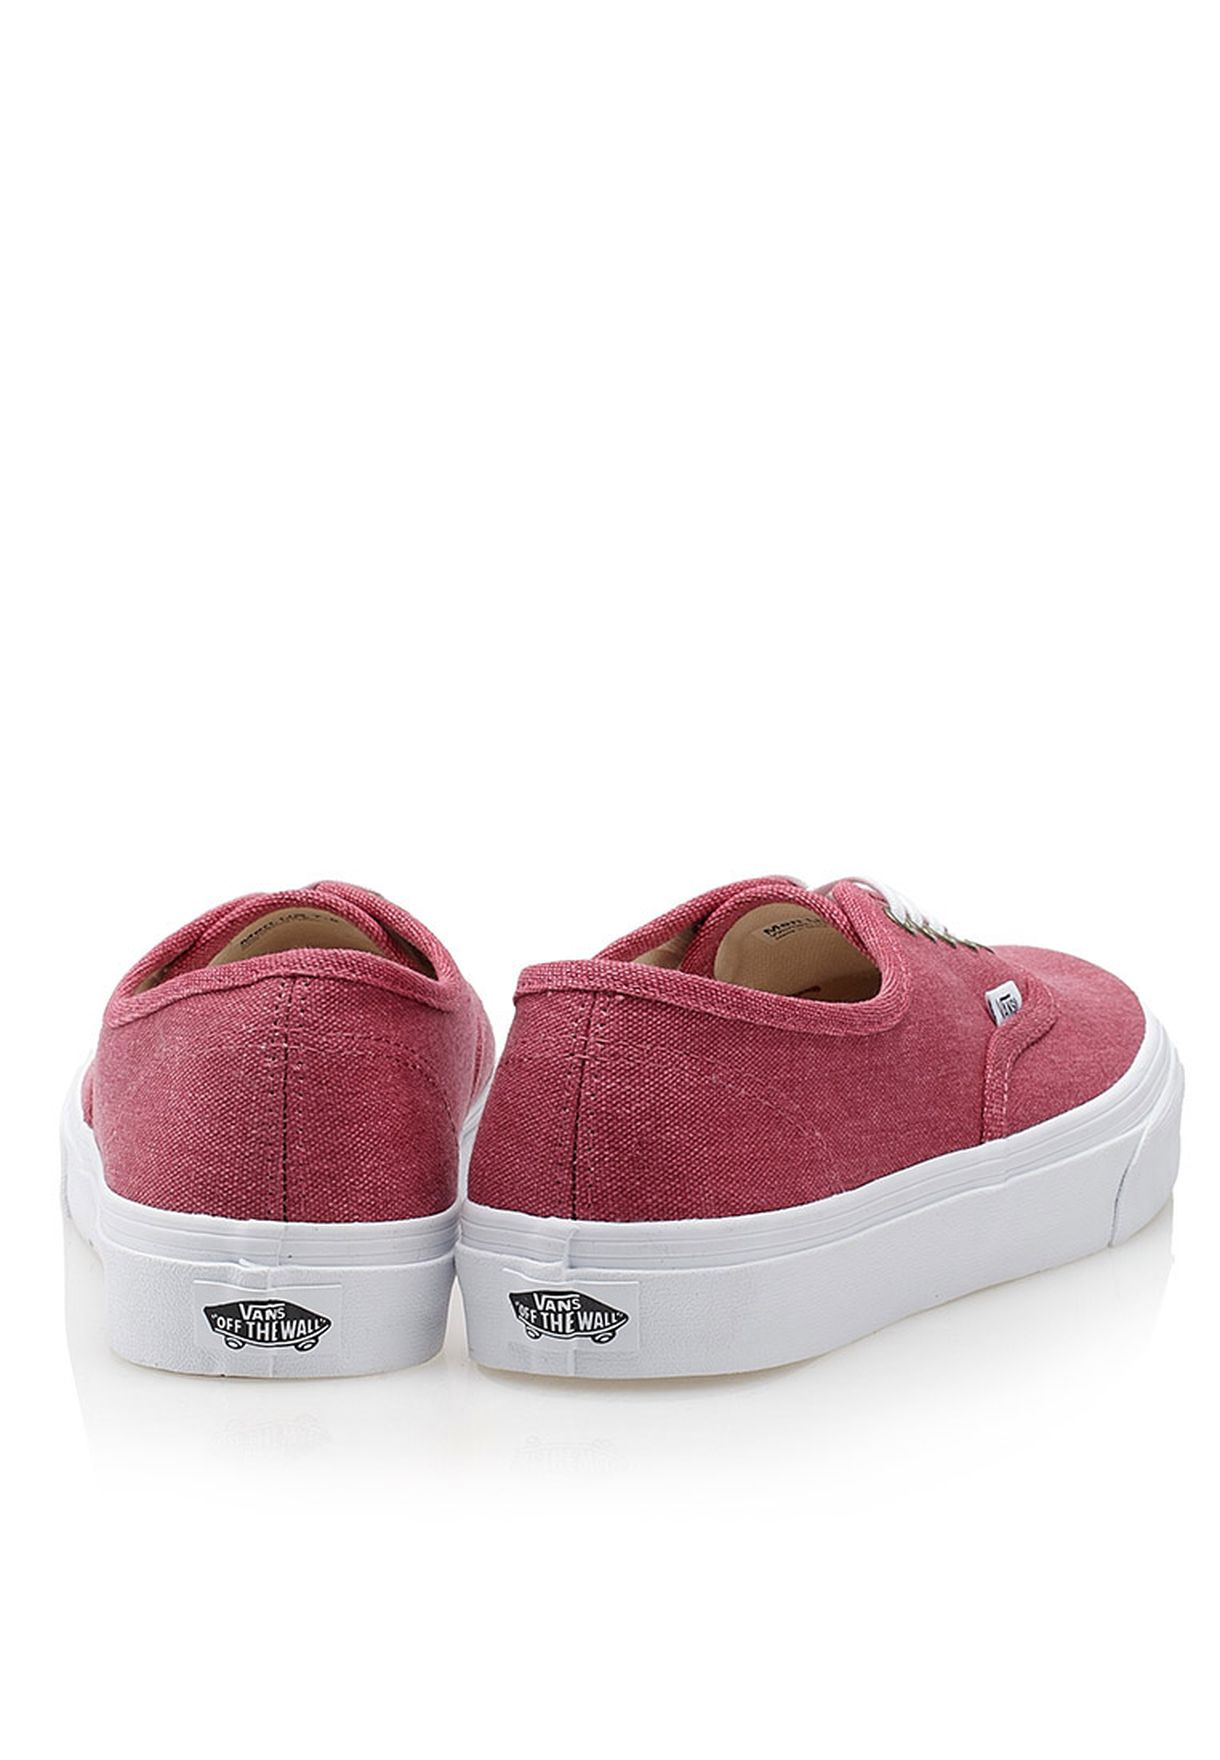 7478dffe08 Shop Vans pink Authentic Slim Washed Sneakers for Women in Oman ...